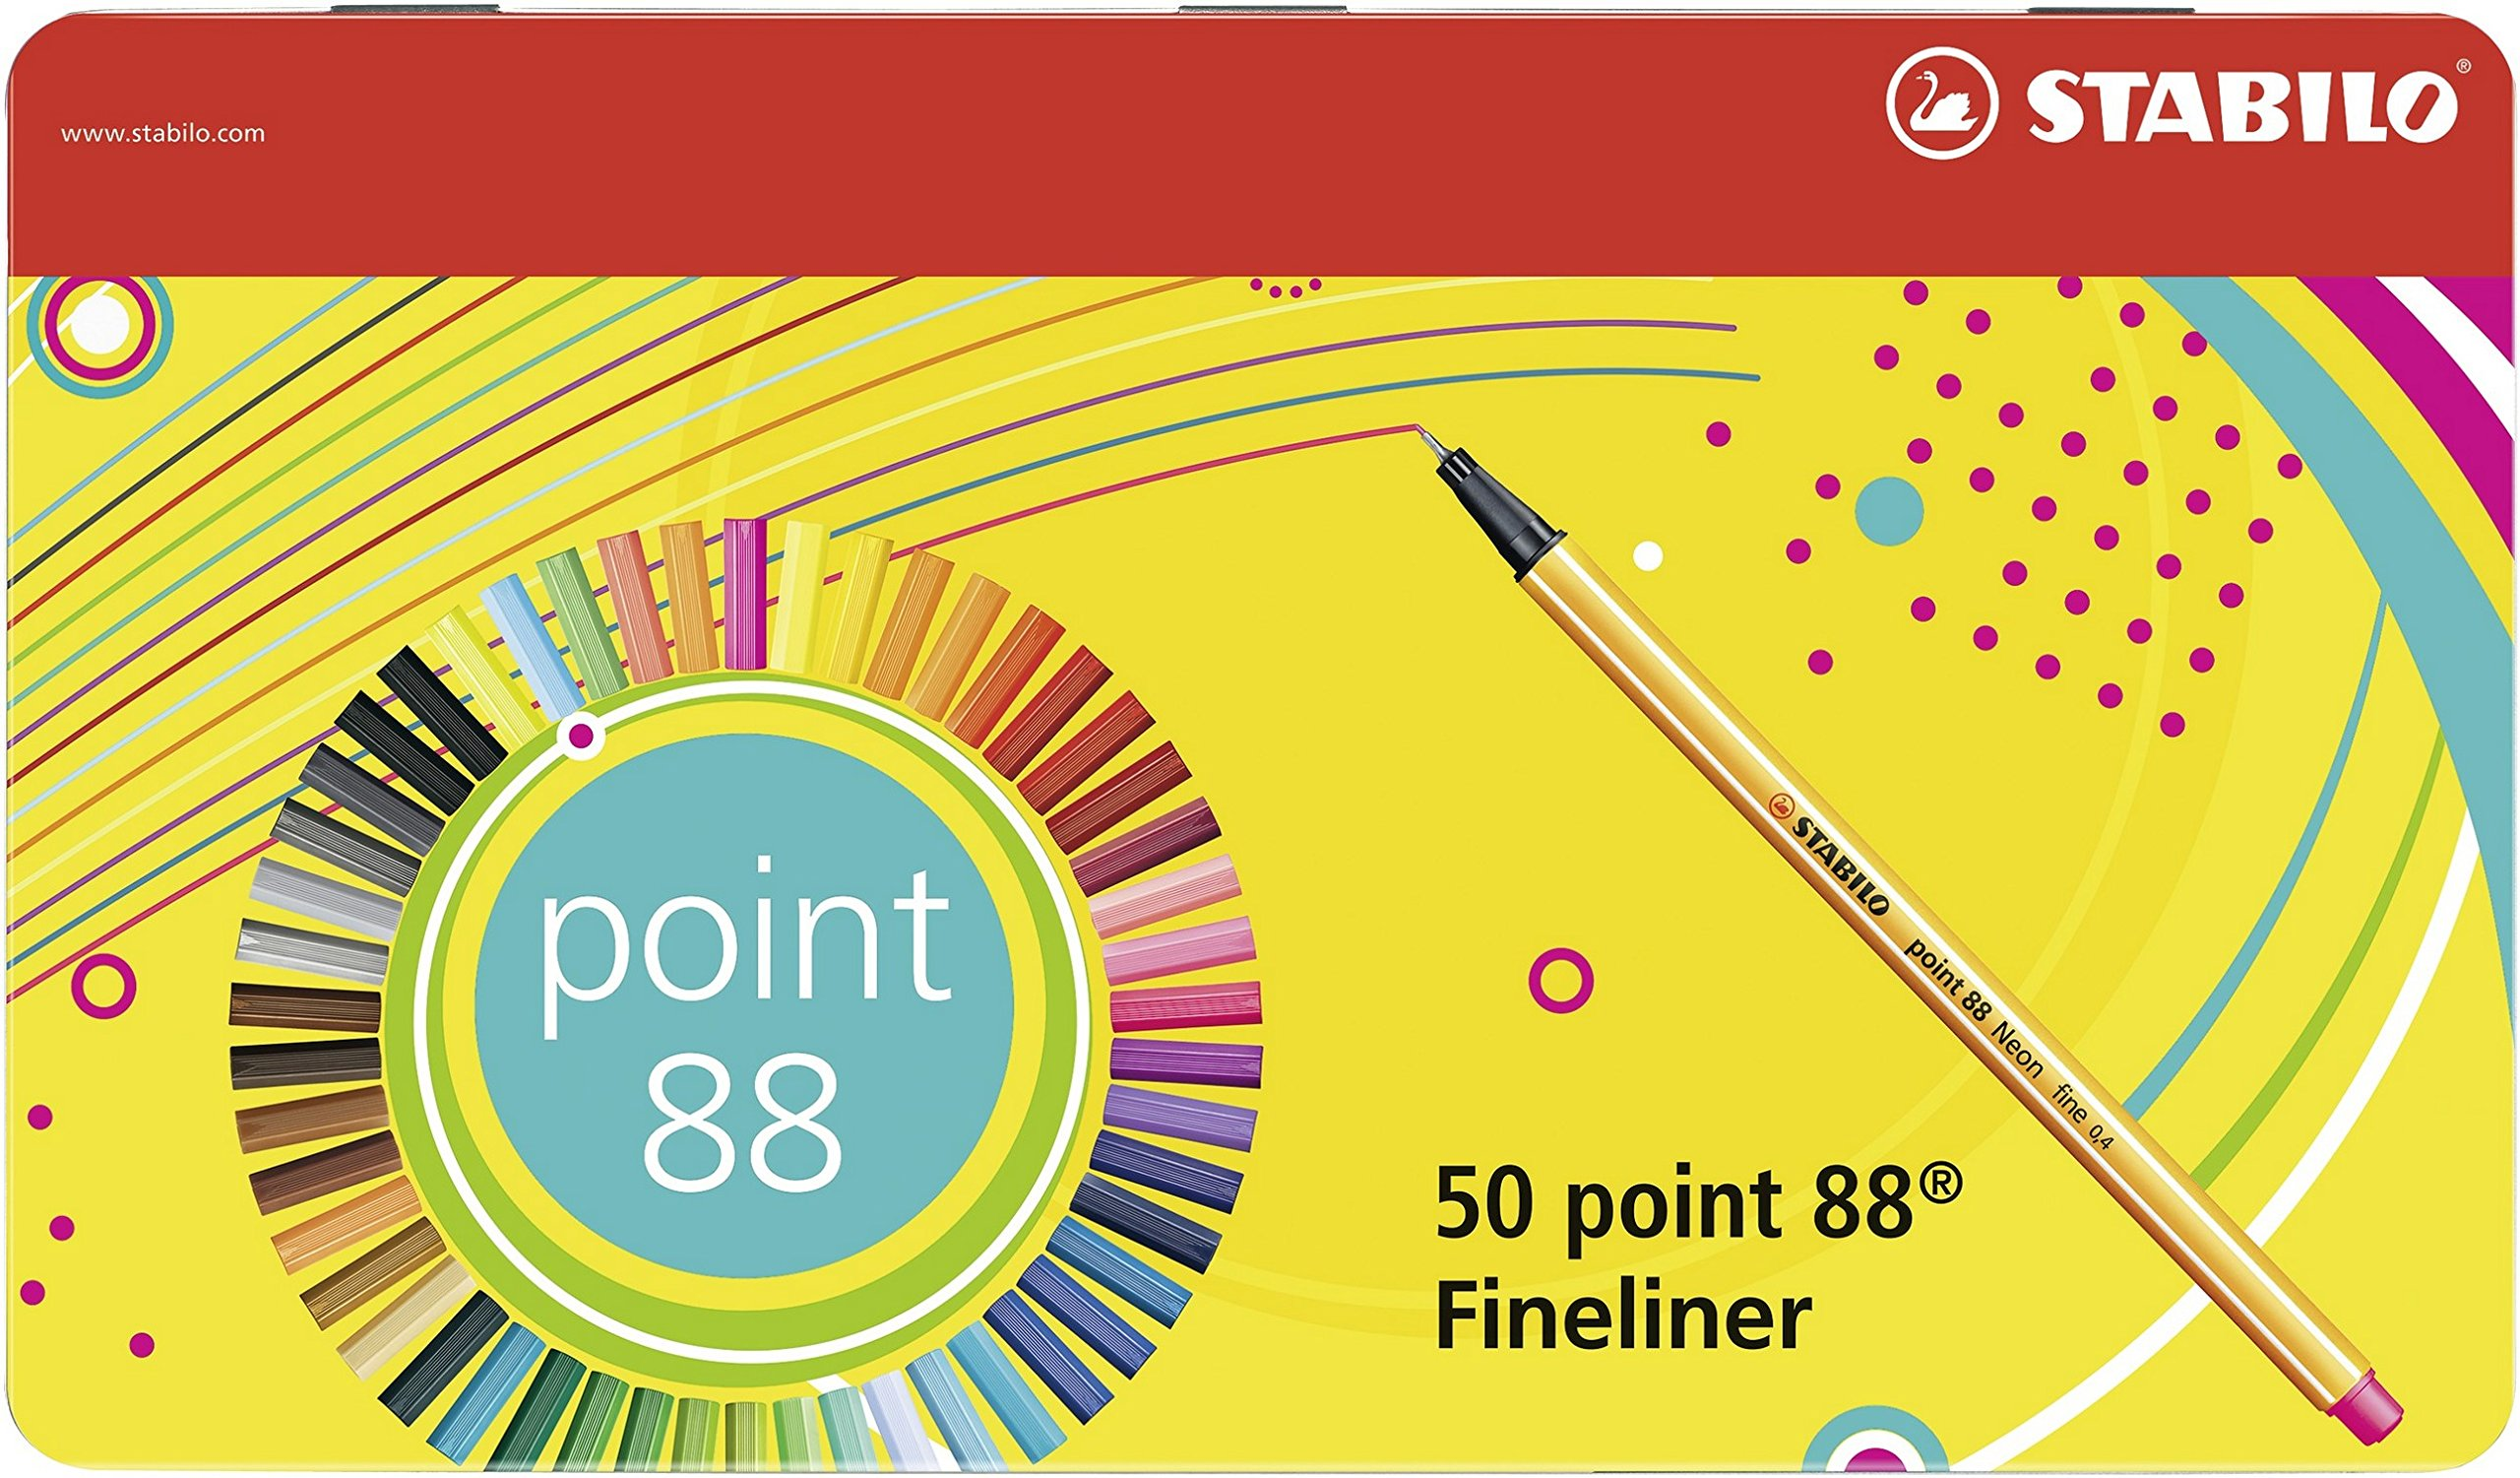 STABILO point 88 fineliner - metal tin of 50 colors - 8850-6 by STABILO